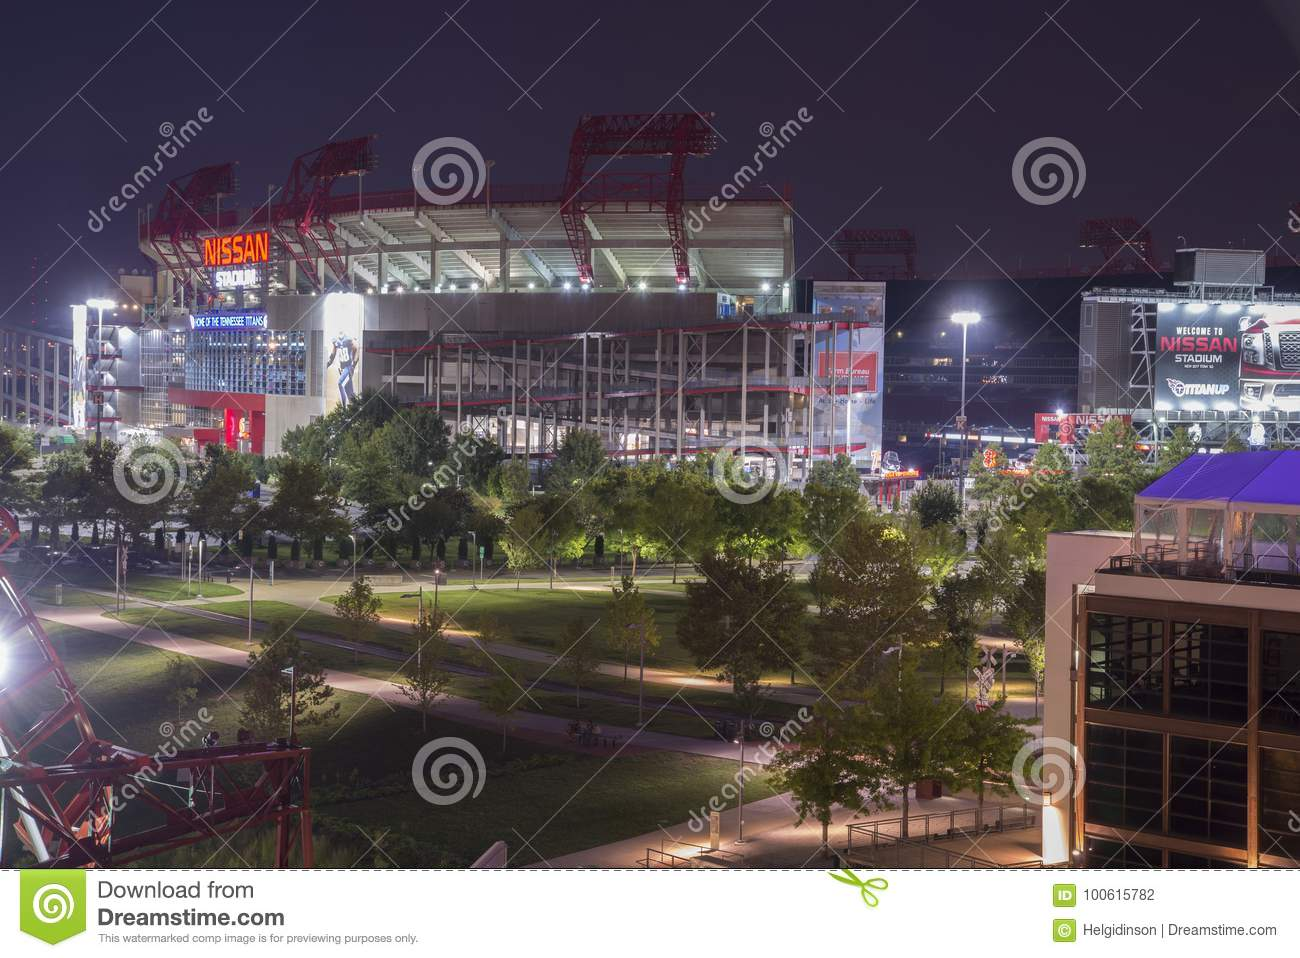 Nissan Stadium Is A Multi Purpose Stadium In Nashville, Tennessee, United  States, Owned By The Metropolitan Government Of Nashville And Davidson  County.